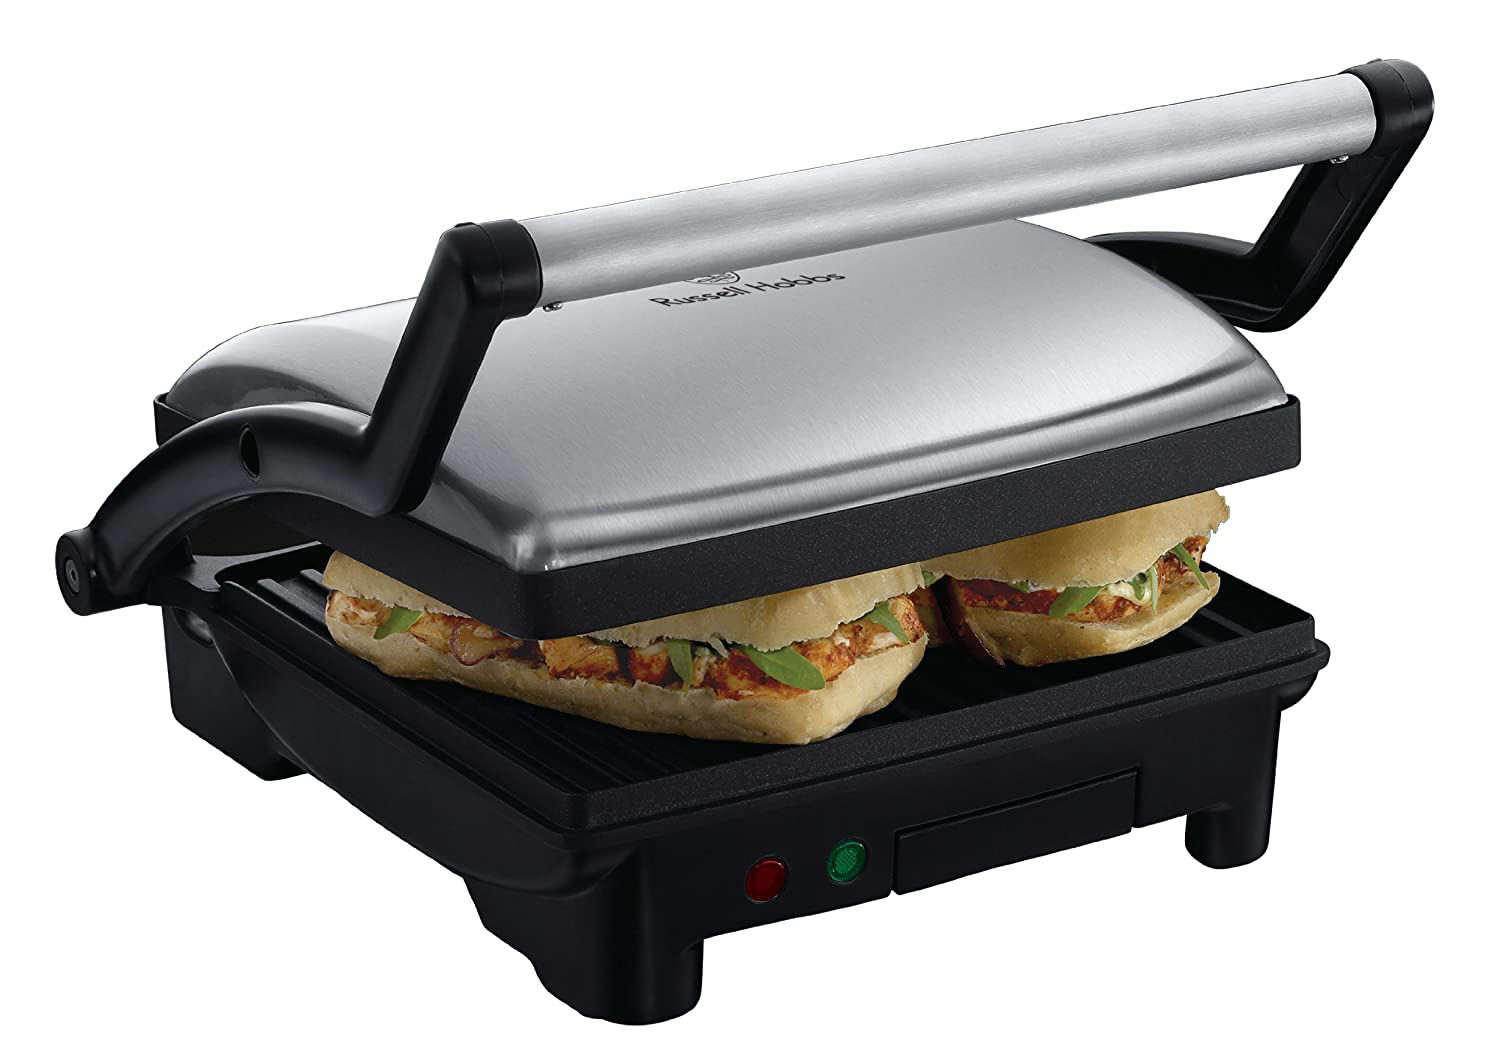 Picture of Russell Hobbs 17888 3-in-1 Panini Press, Grill and Griddle - Stainless Steel by Russell Hobbs